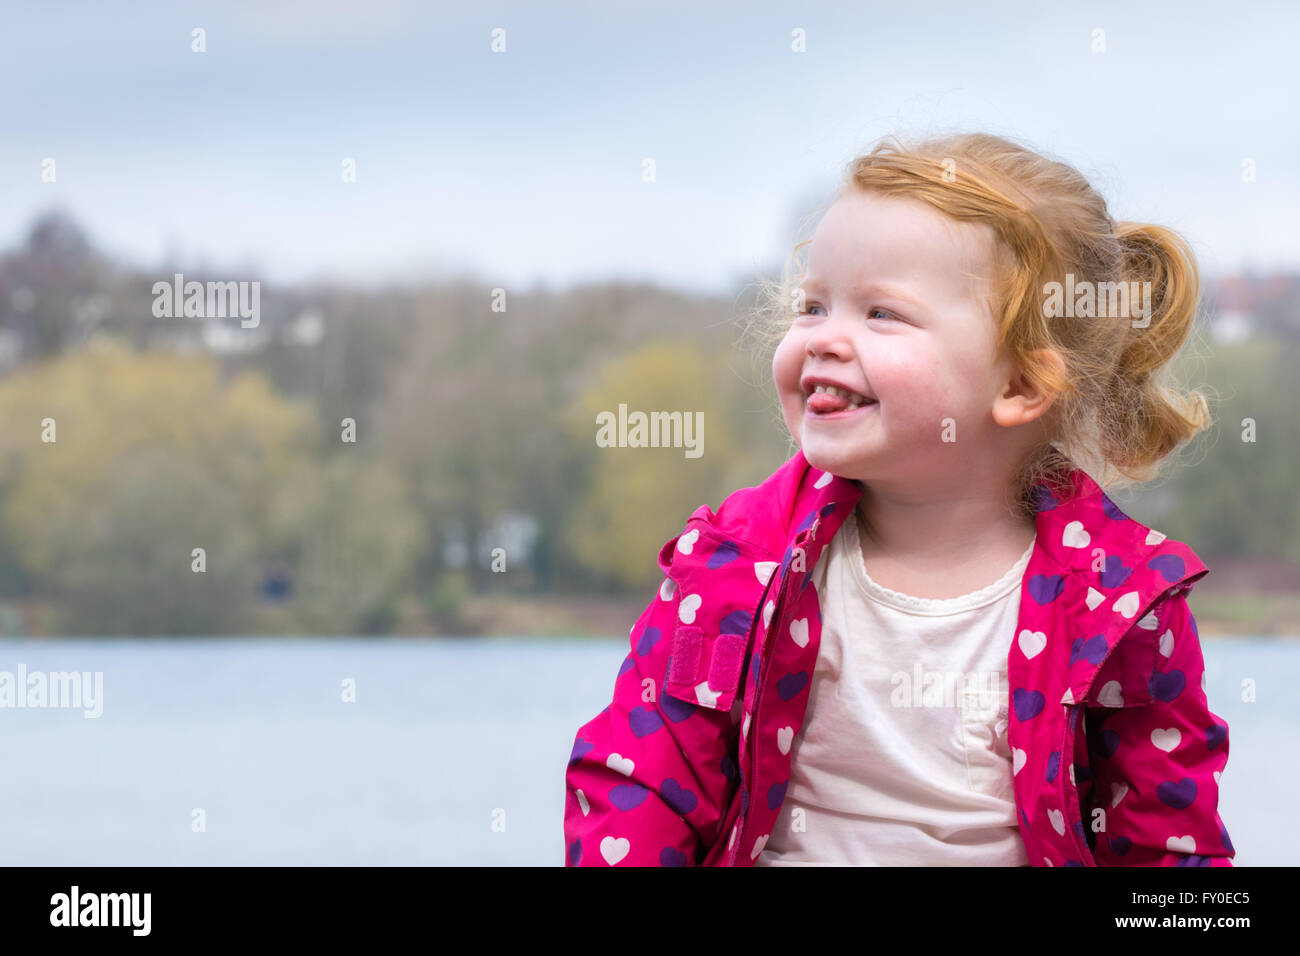 cute toddler sticking tongue out - Stock Image